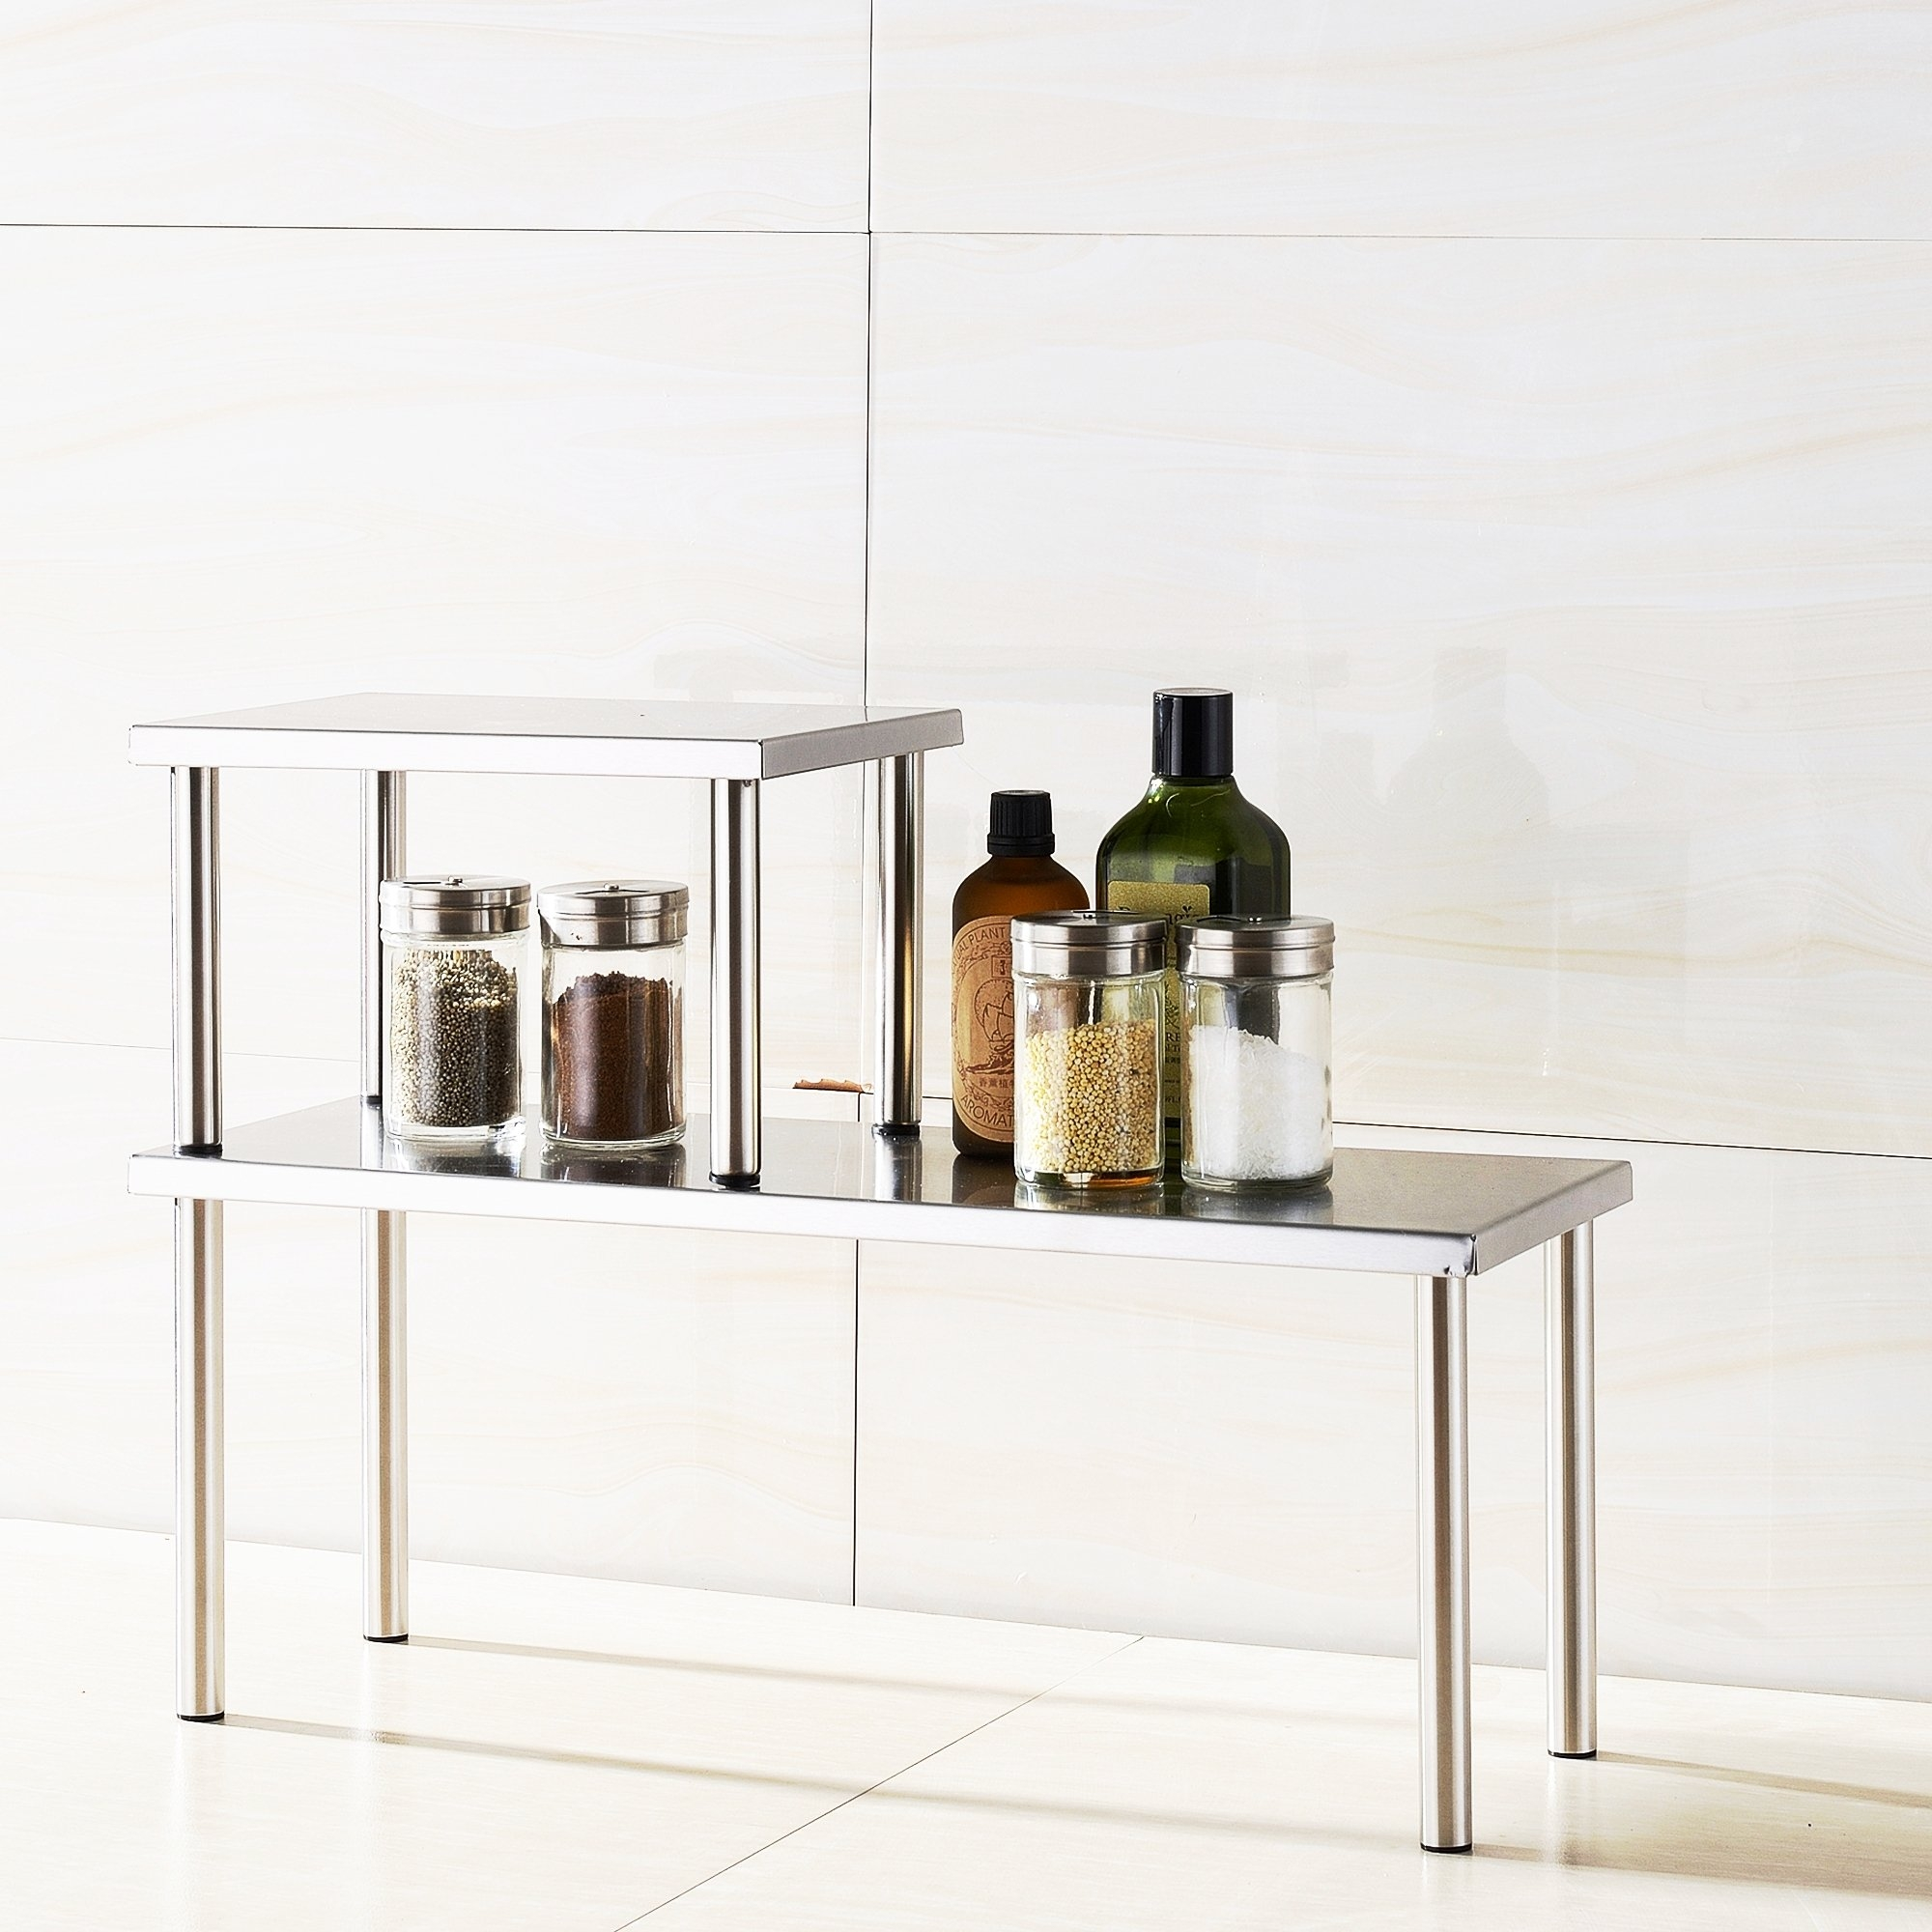 Merveilleux Cook N Home 2 Tier Counter Storage Shelf, Stainless Steel